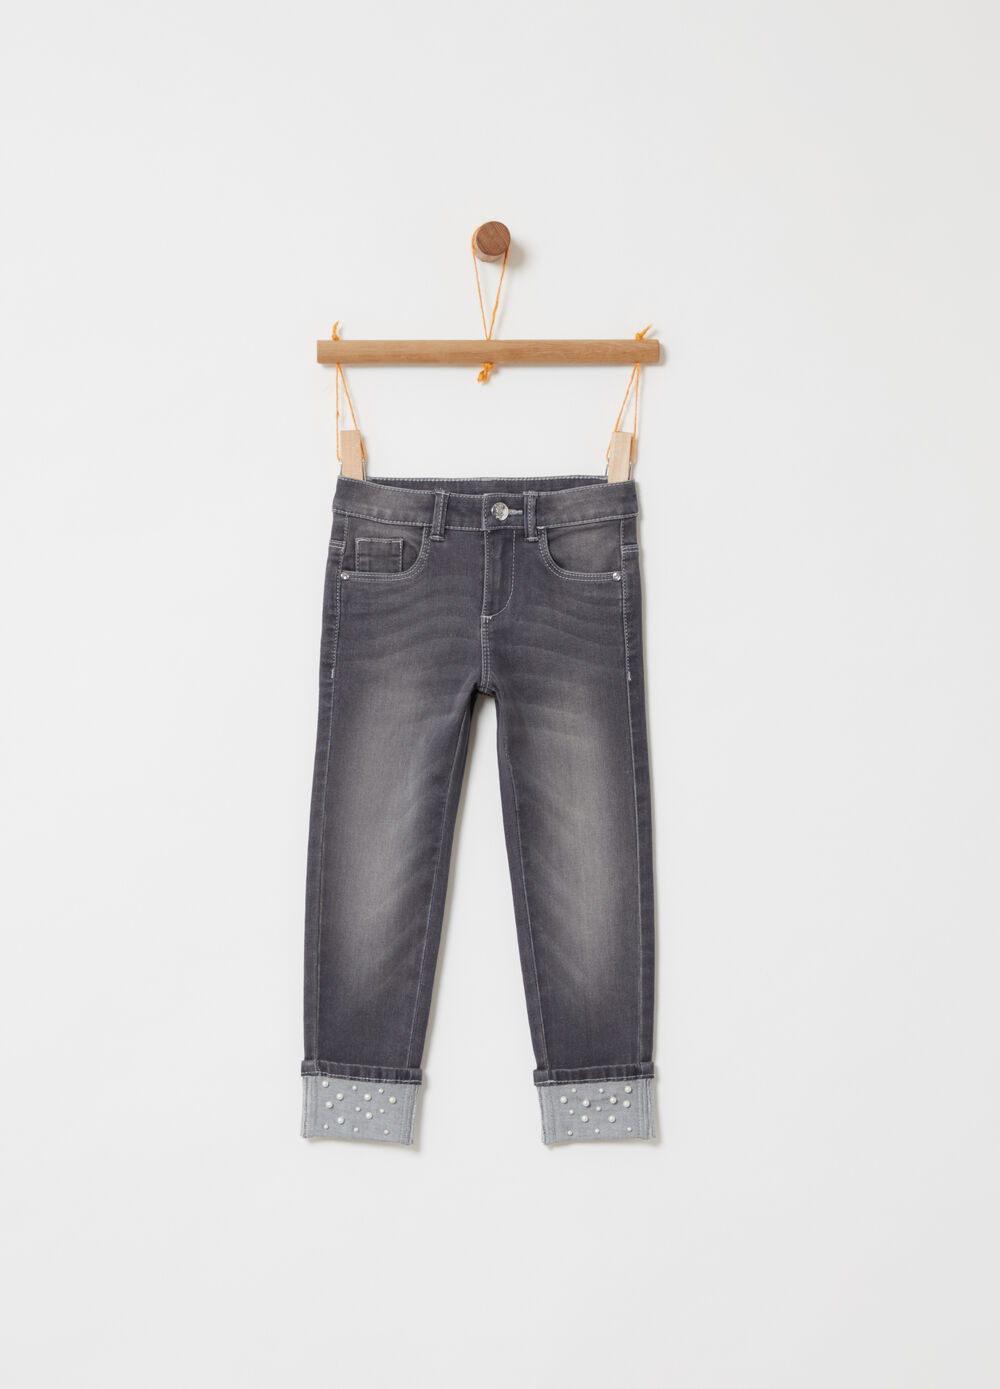 Skinny-fit jeans with jewel rivets and beads